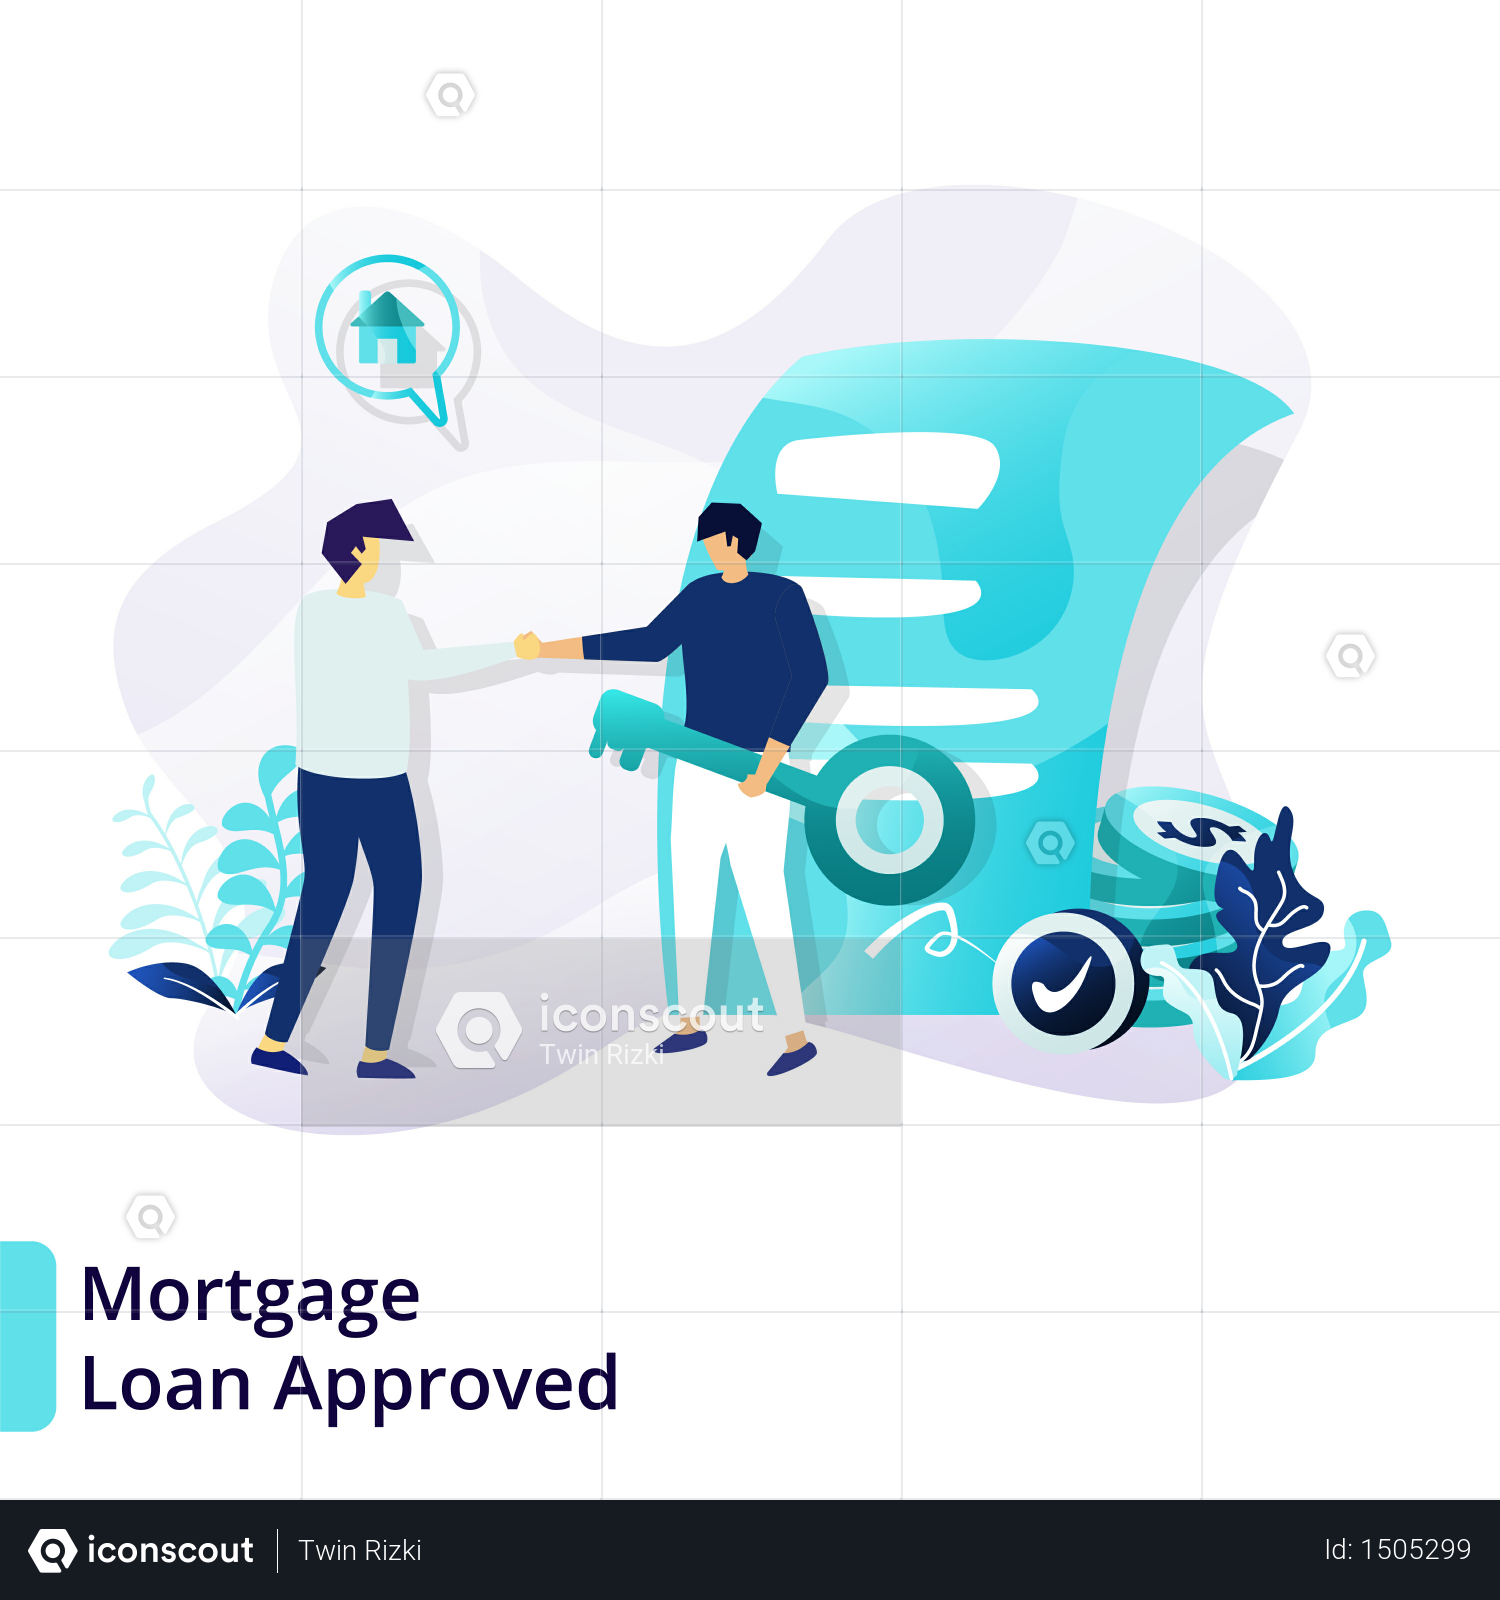 Premium Landing Page Template Of Mortgage Loan Approved Illustration Download In Png Vector Format Mortgage Loans Mortgage Marketing Mortgage